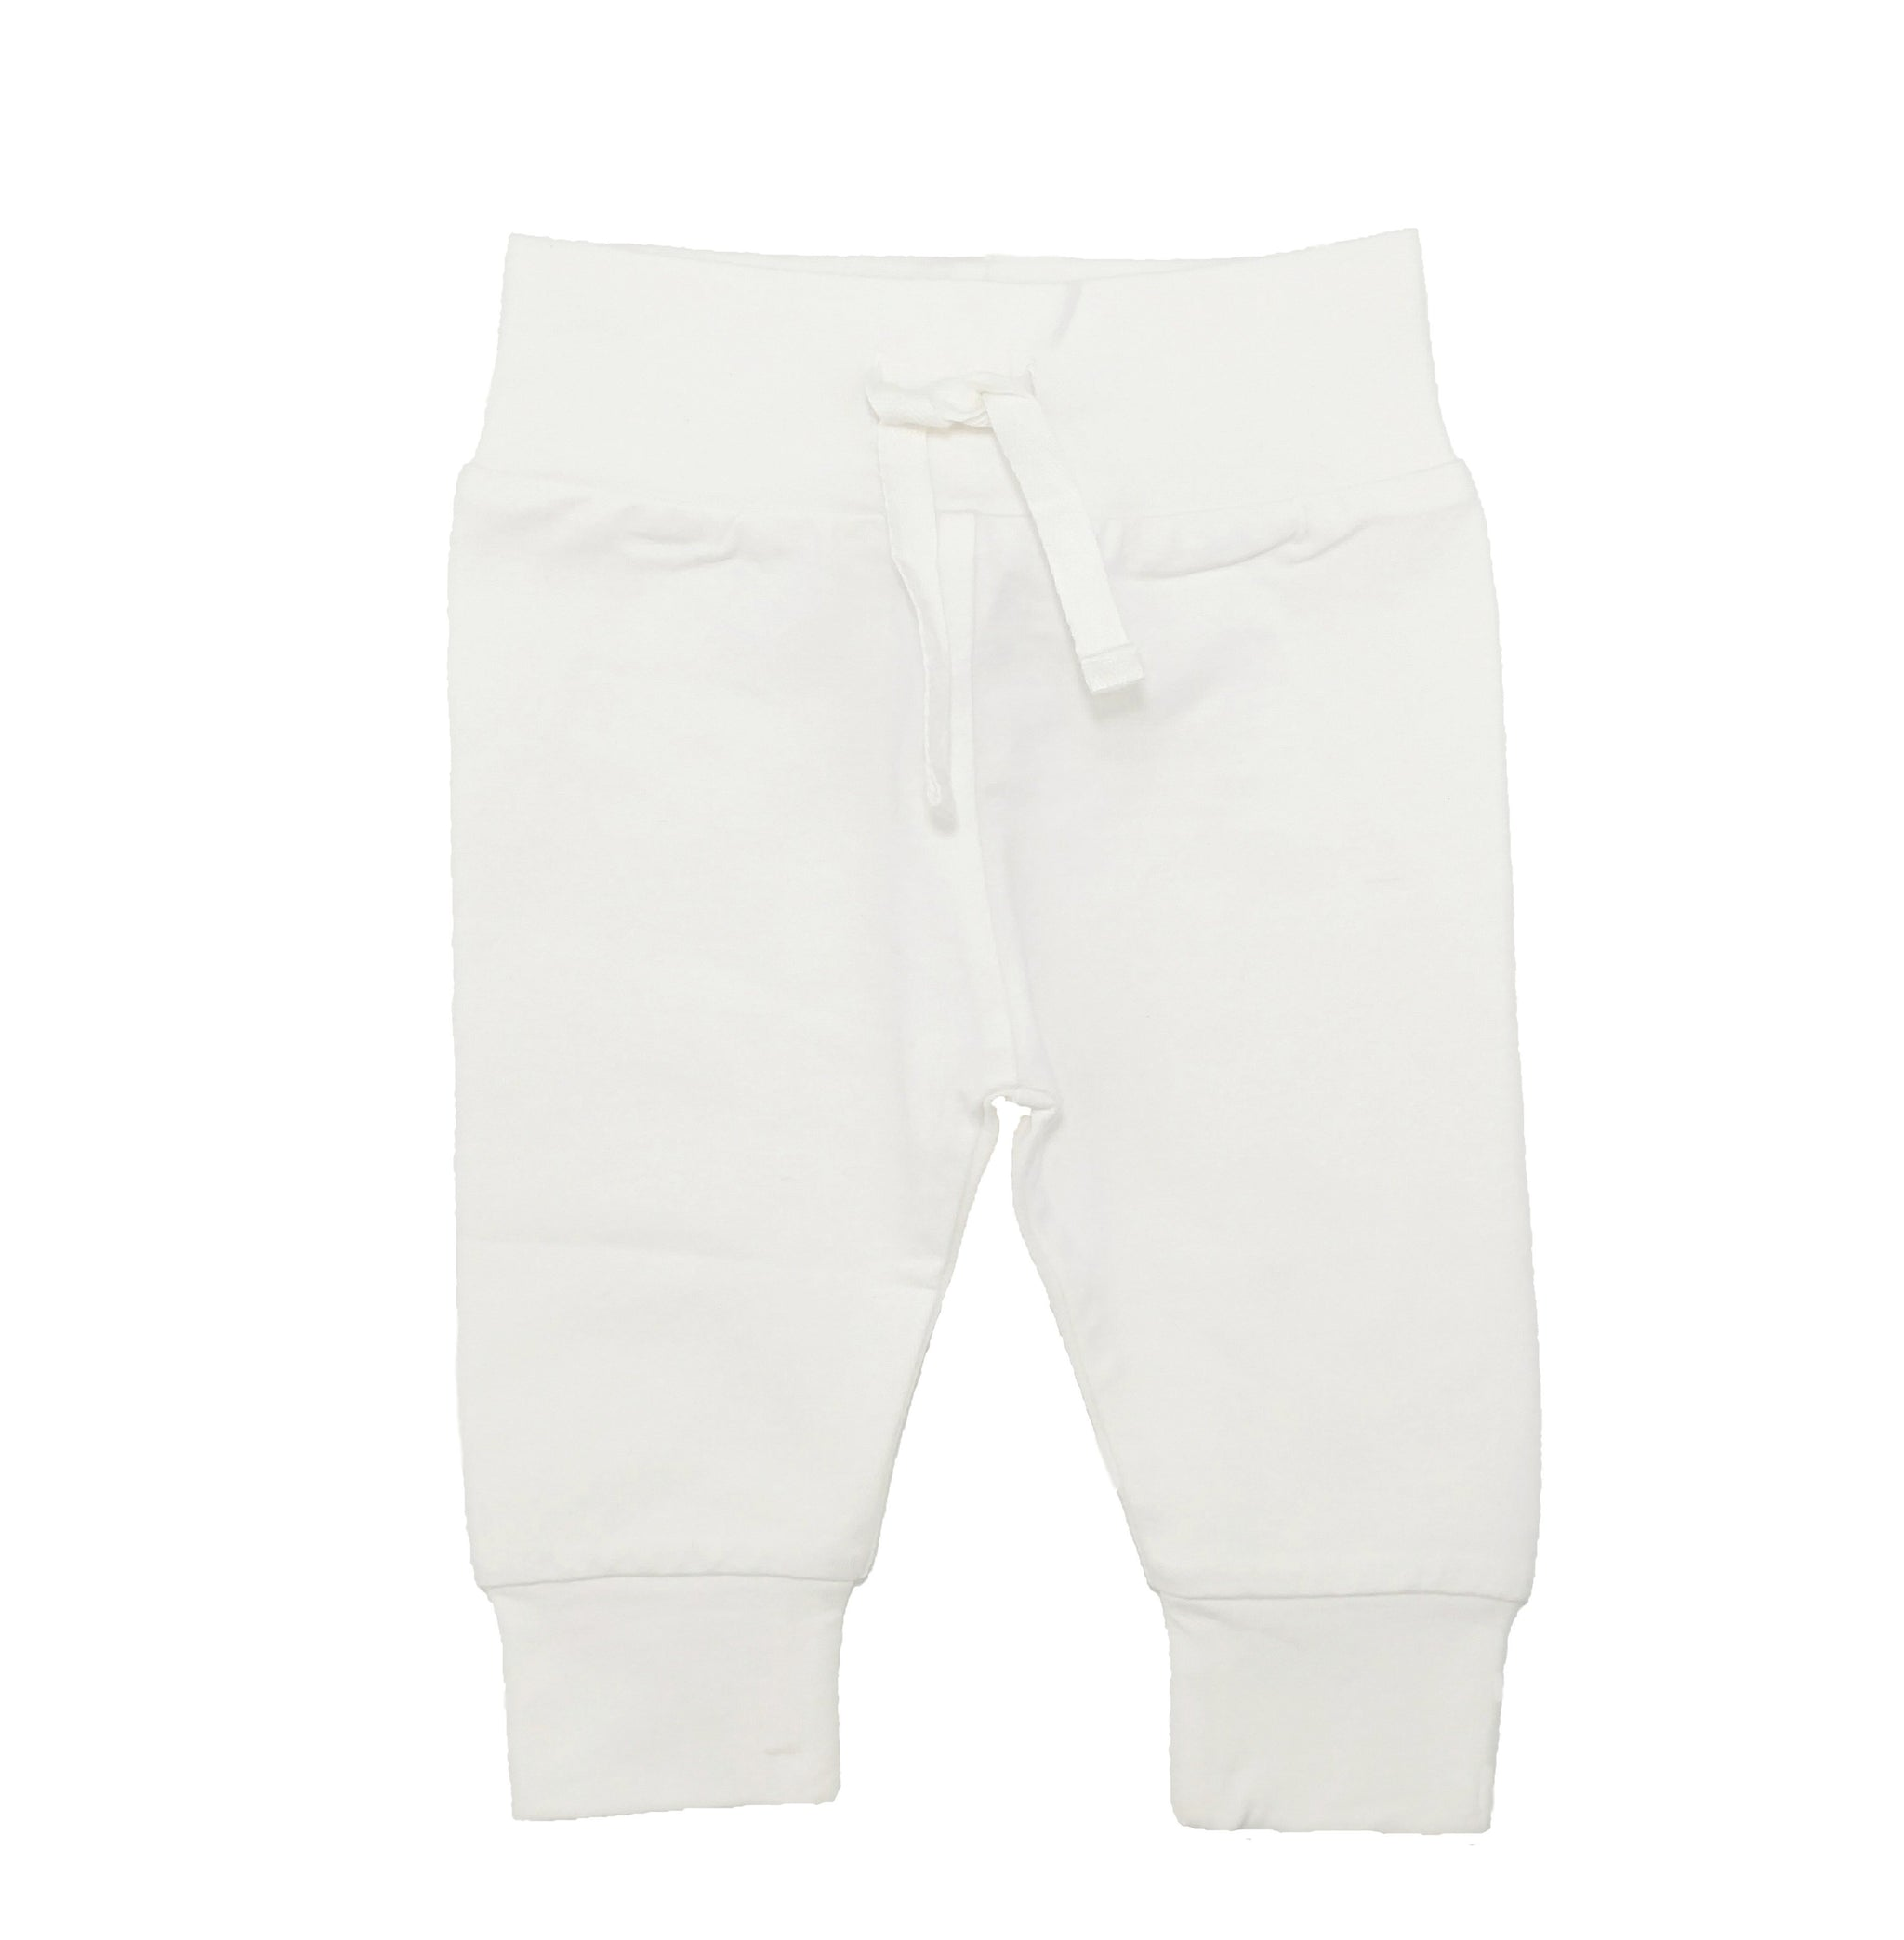 Best selling organic baby leggings in the softest organic cotton fabric. Made by Lucy Lue Organics.  Popular gender neutral ivory color. Baby list must-have. Newborn take home outfit